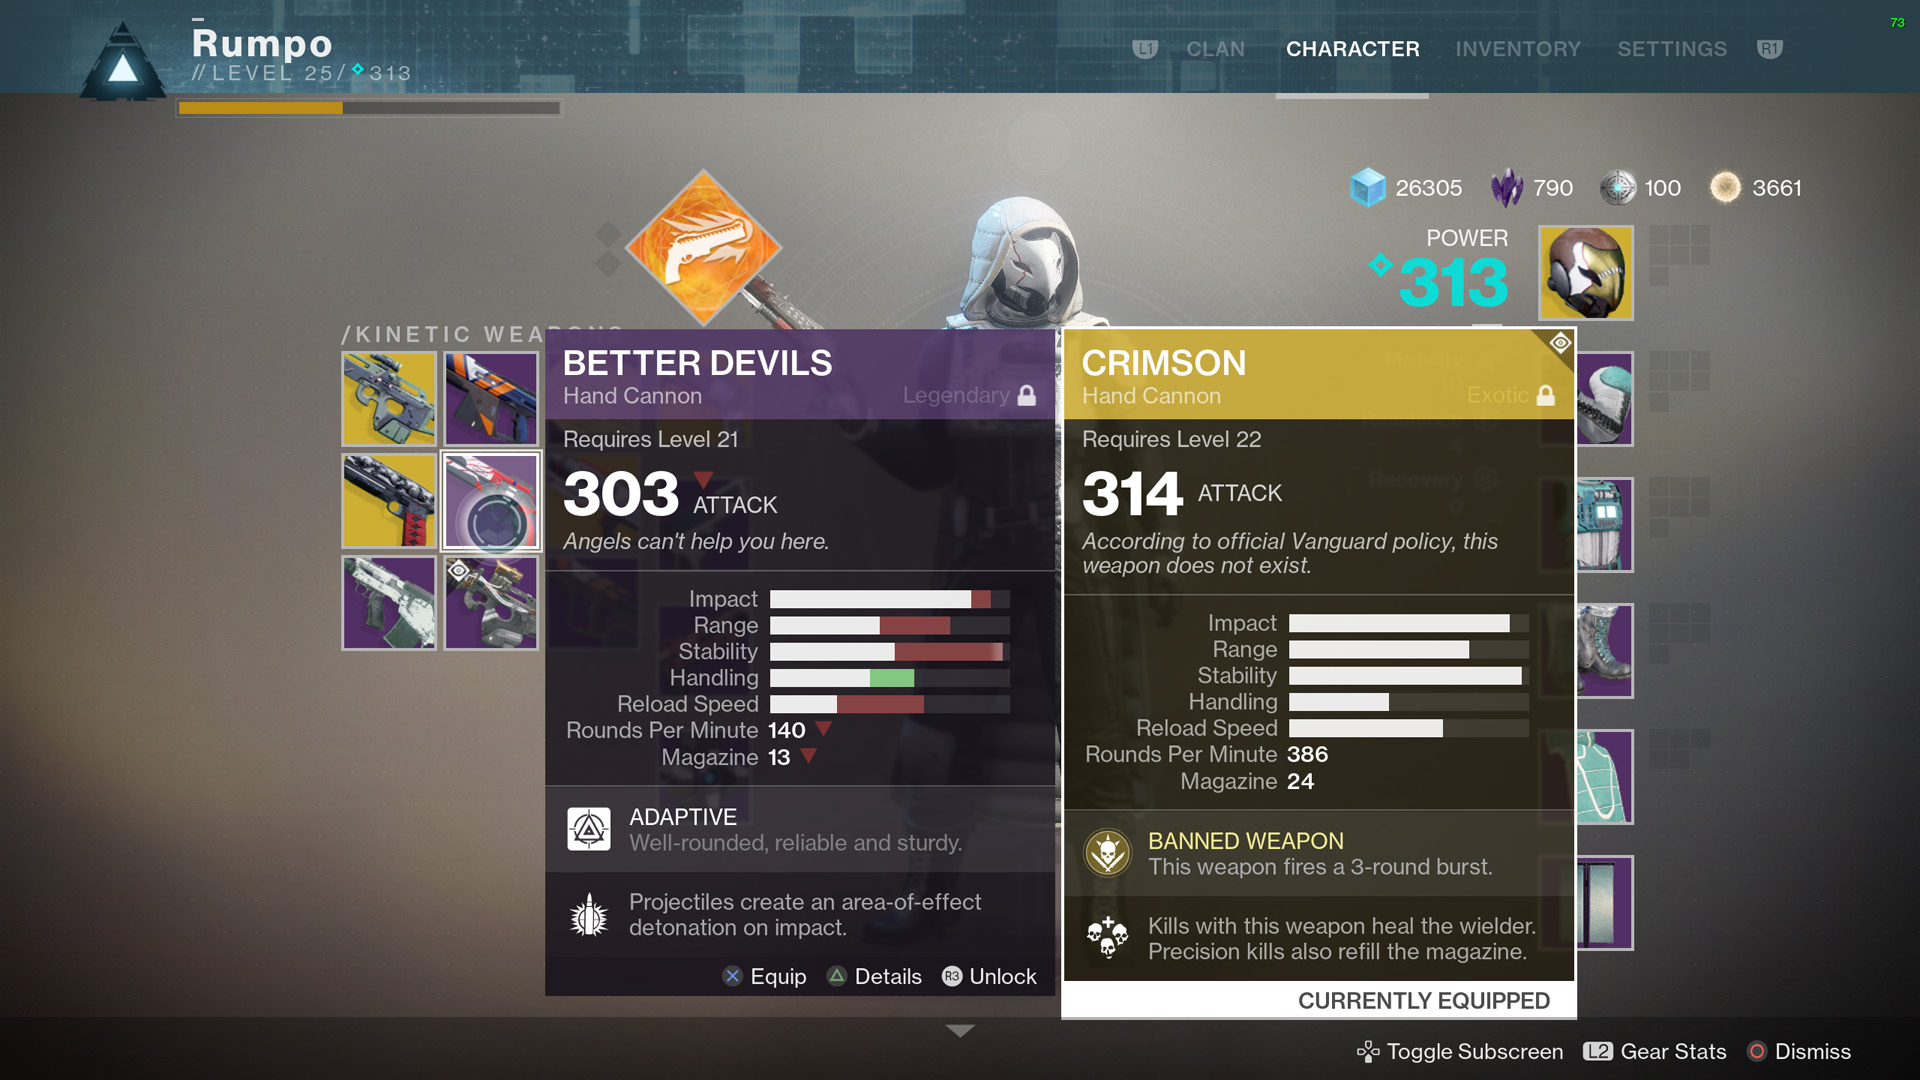 Destiny 2 crimson exotic hand cannon shacknews crimson also has better stats than better devils in almost every category better devils has a bit better handling but gets smashed in every other malvernweather Images